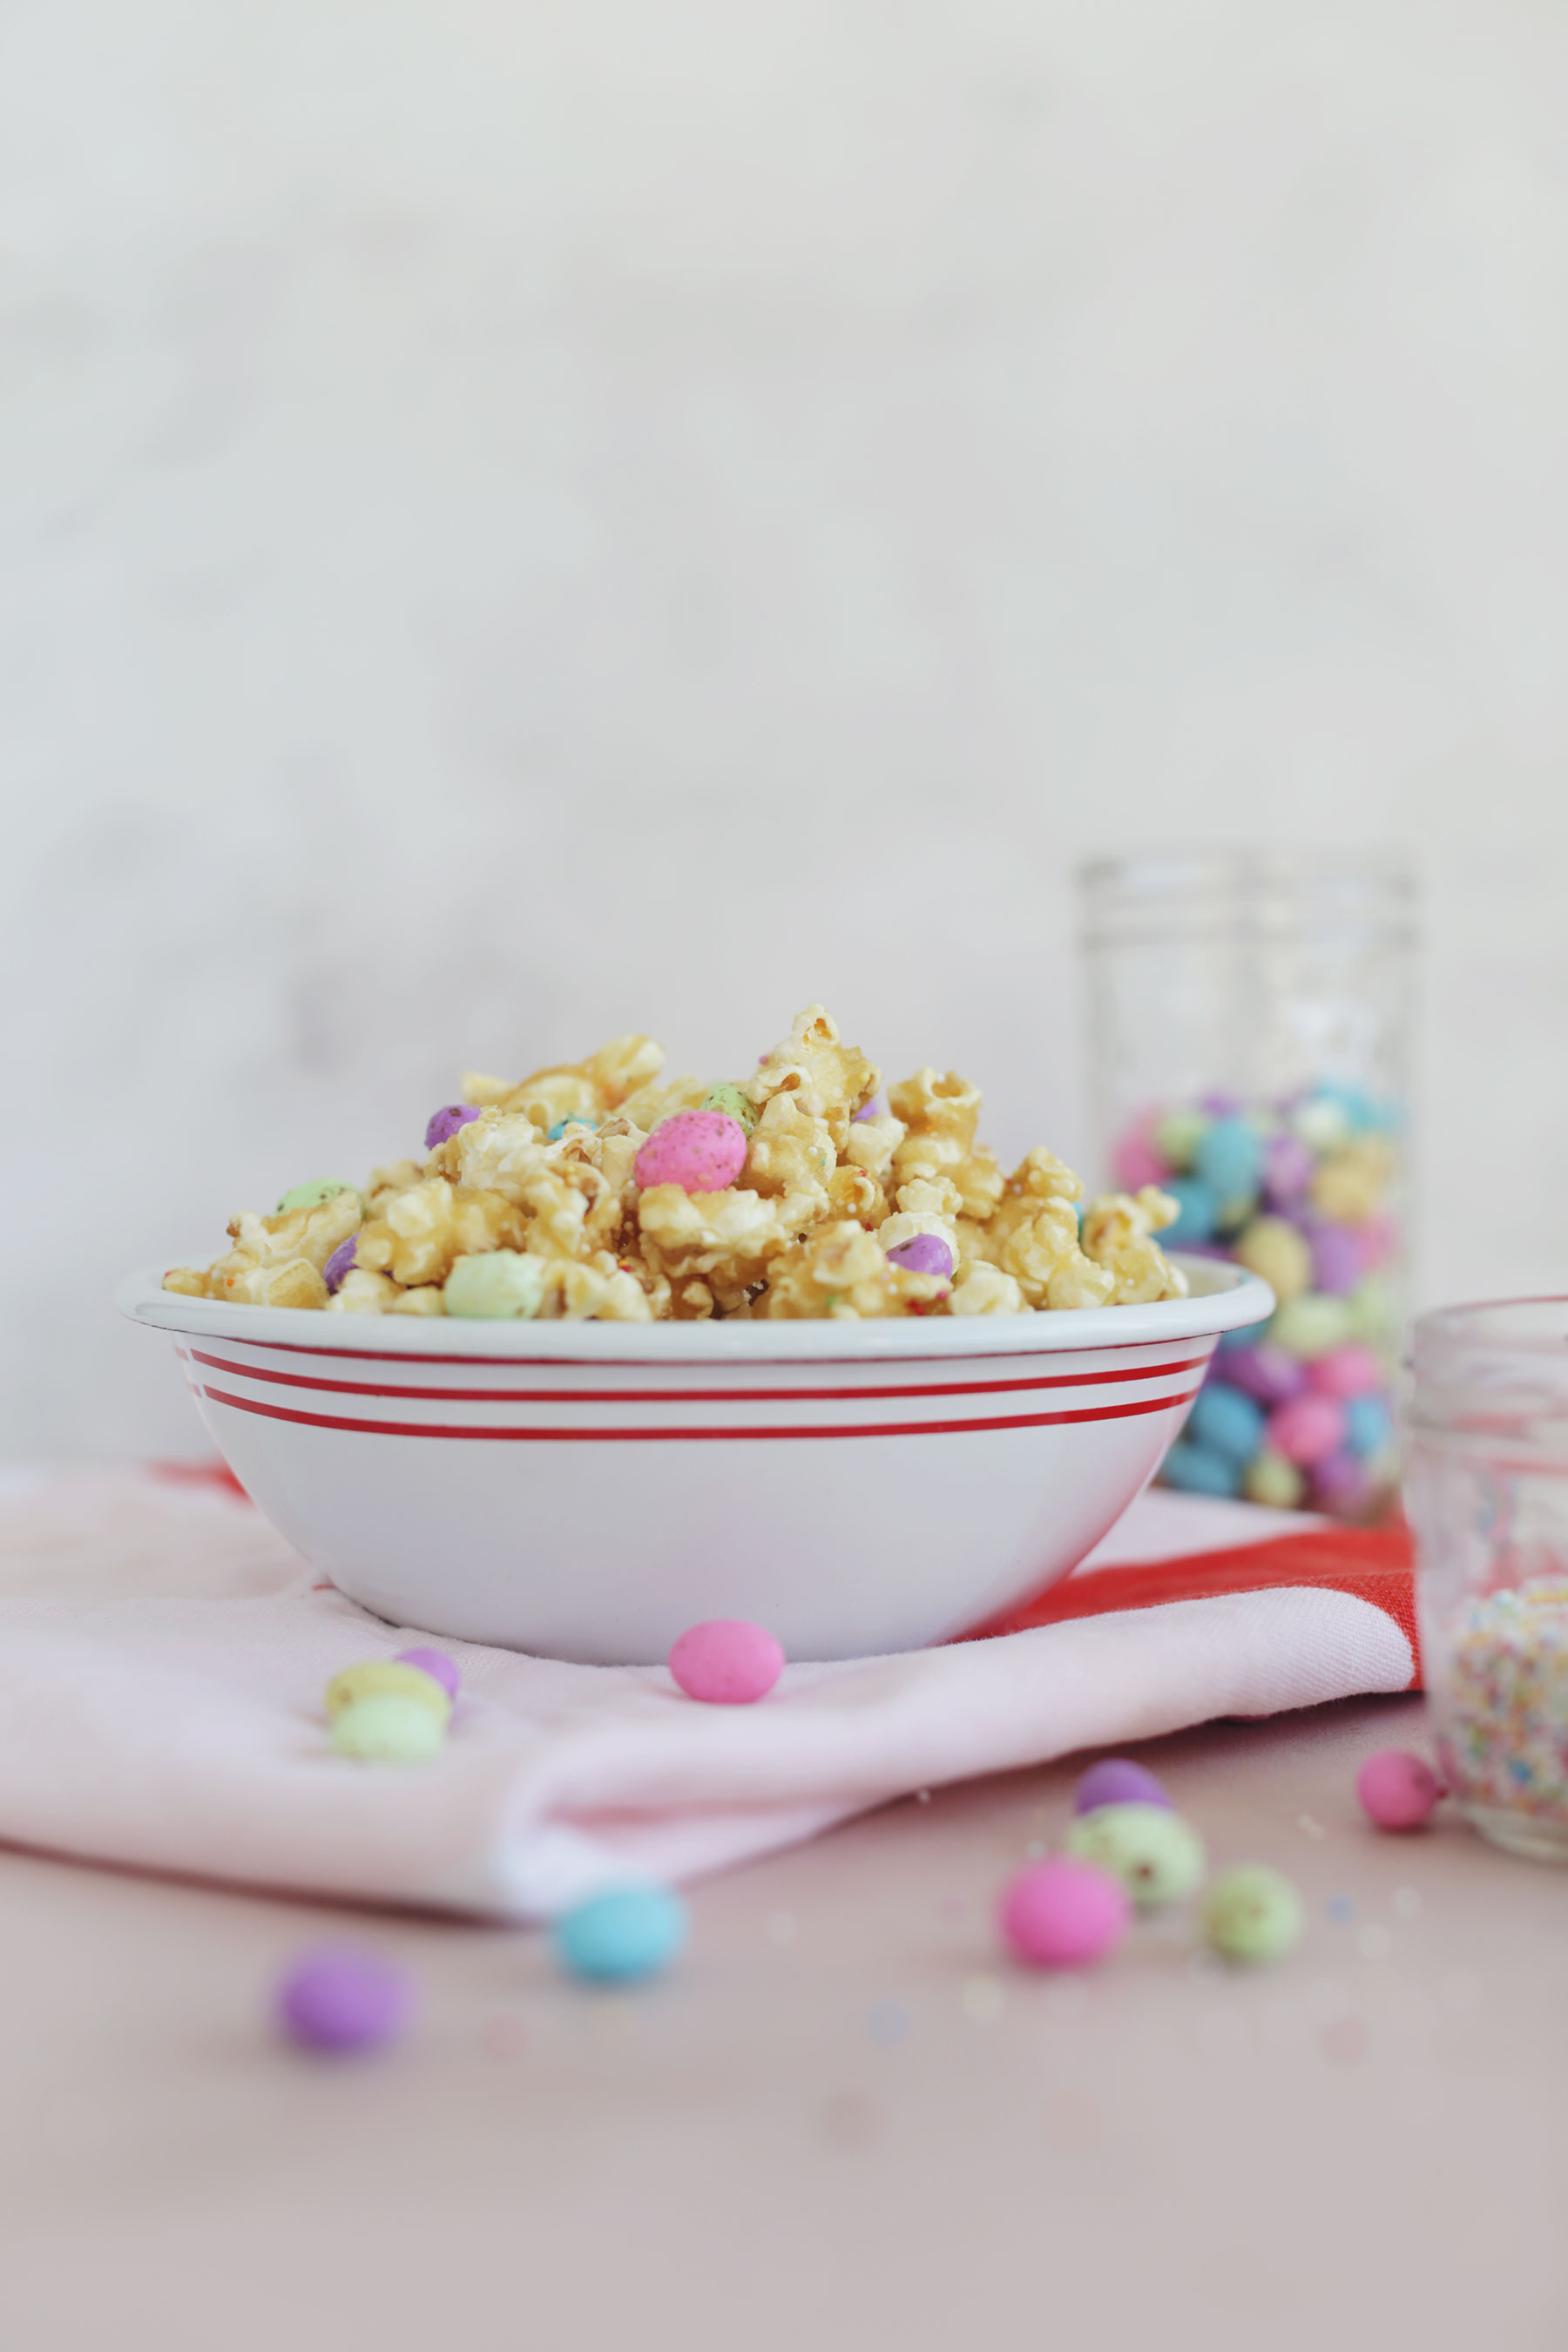 Caramel-Popcorn-with-speckled-eggs-and-sprinkles-1